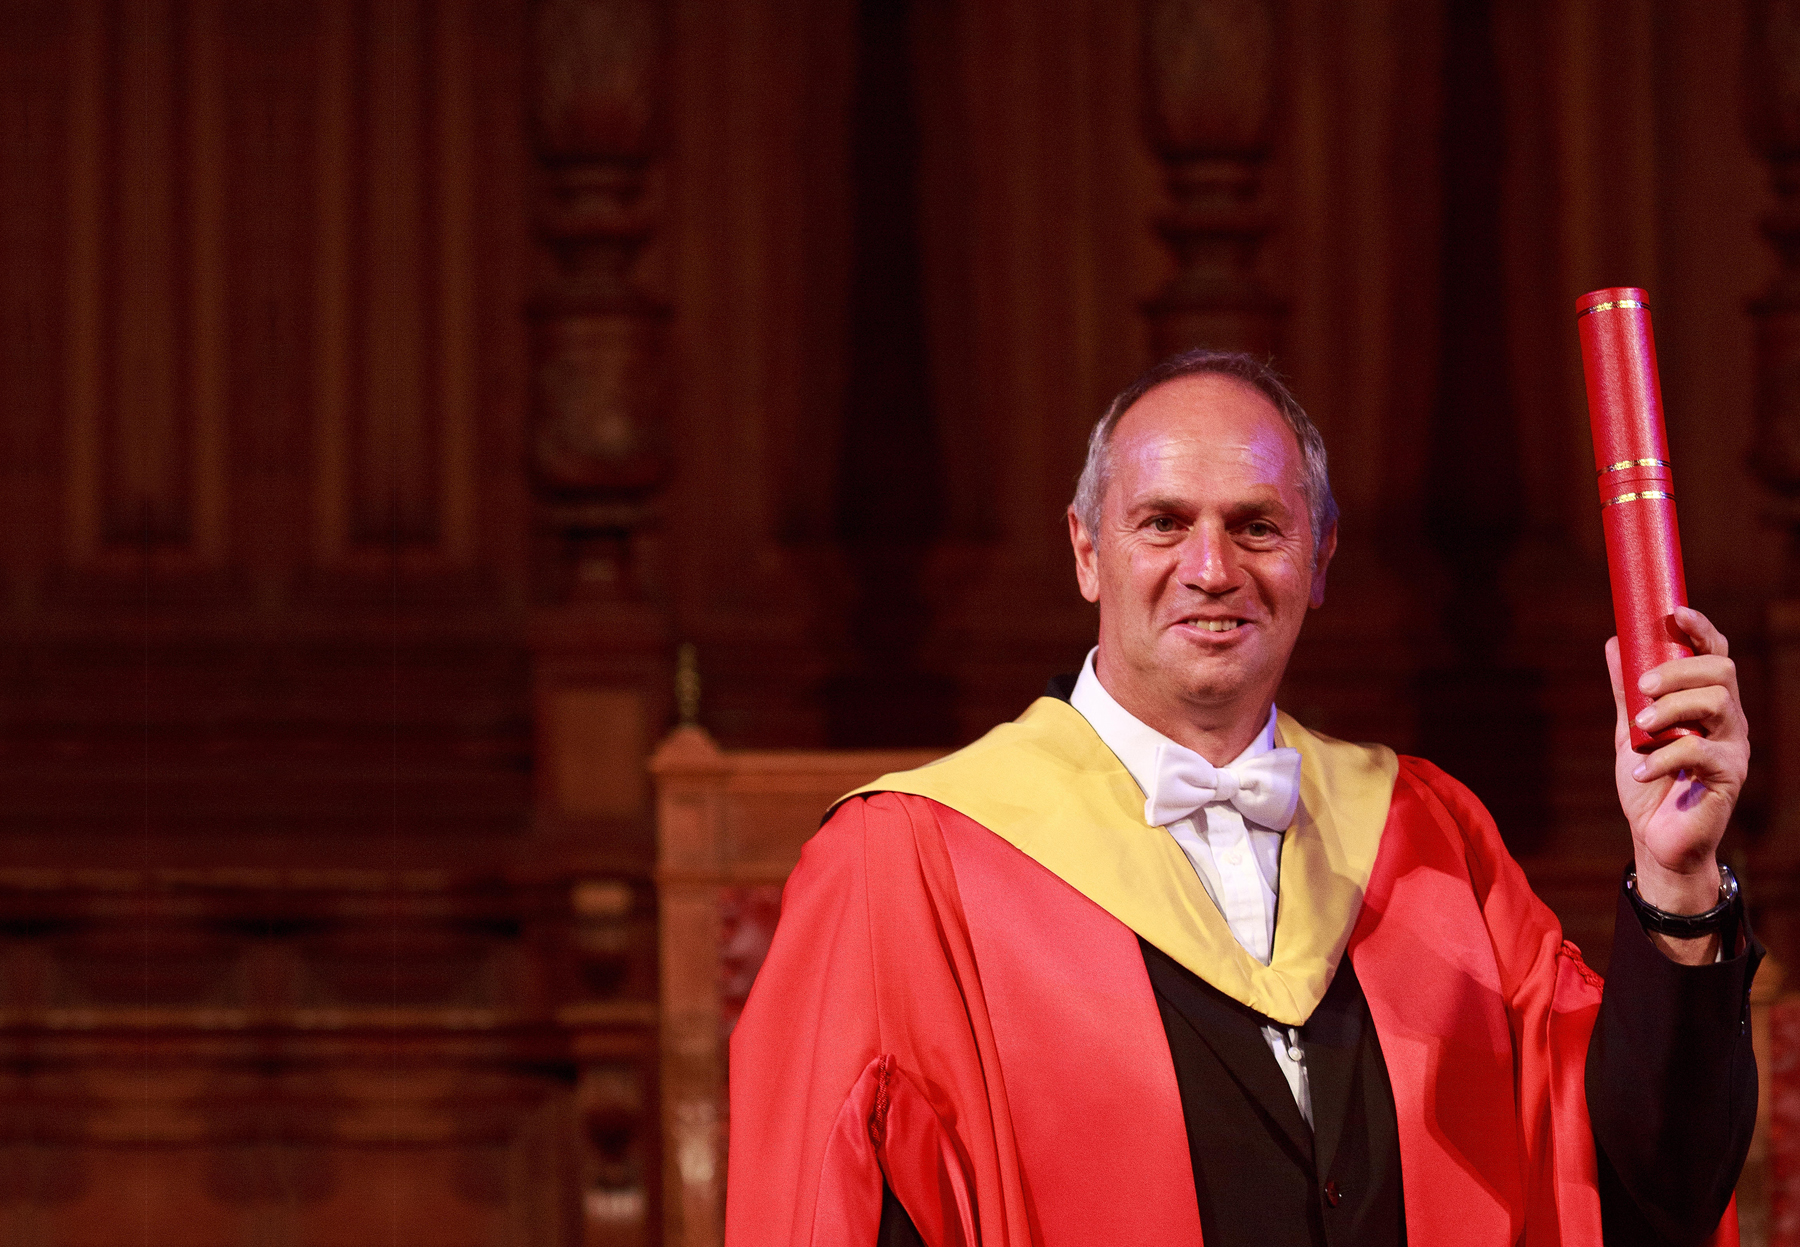 Overcoming Obstacles, Sir Steve Redgrave